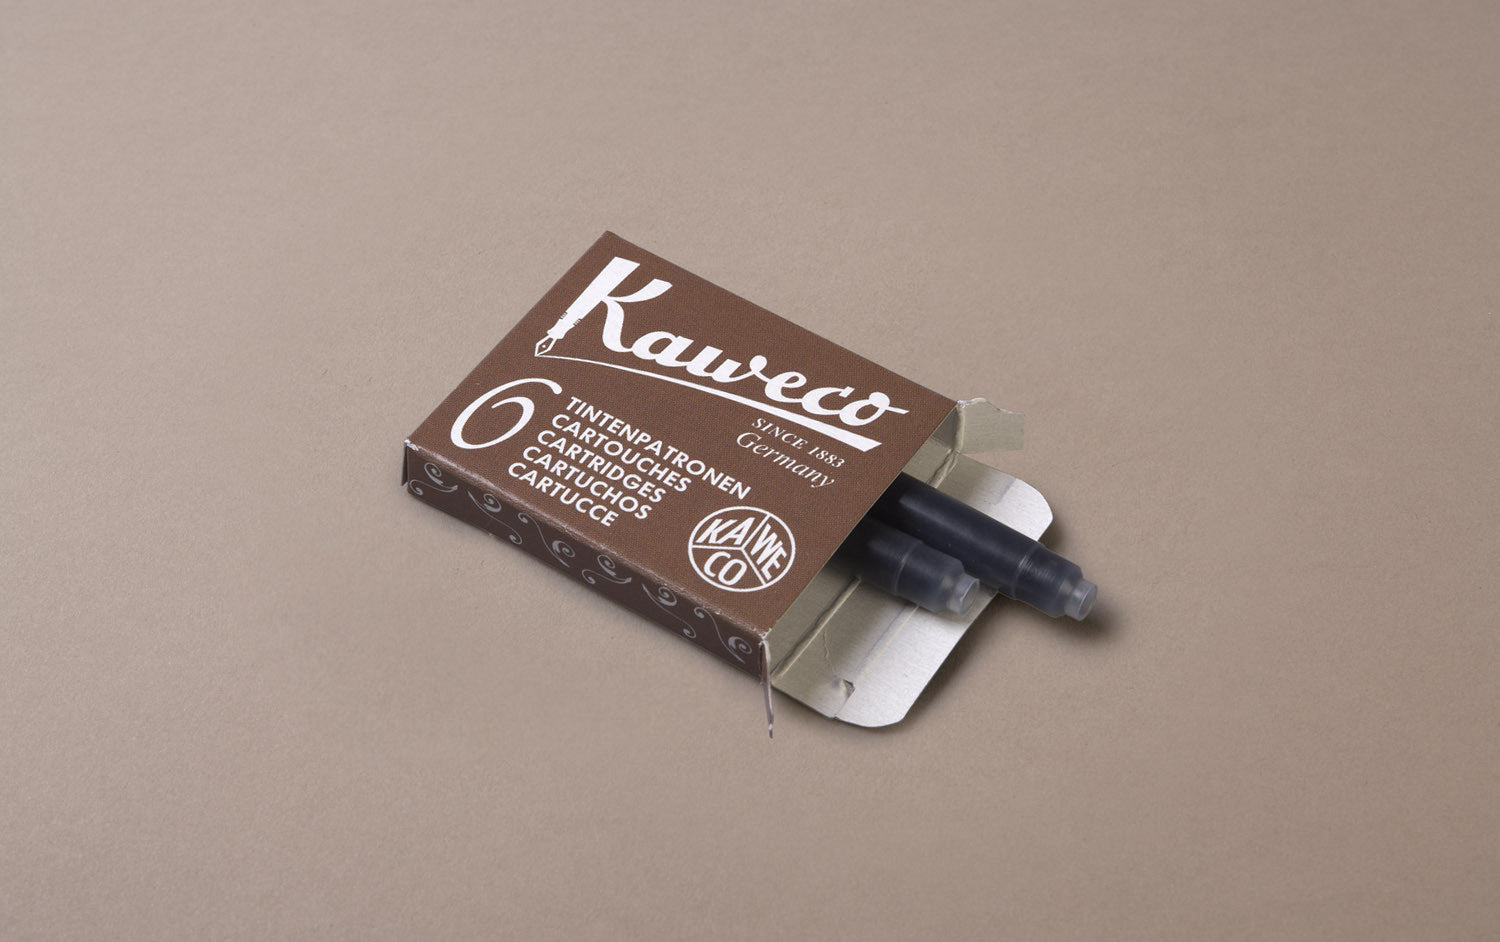 Sepia Kaweco 6 Pack Ink Cartridges